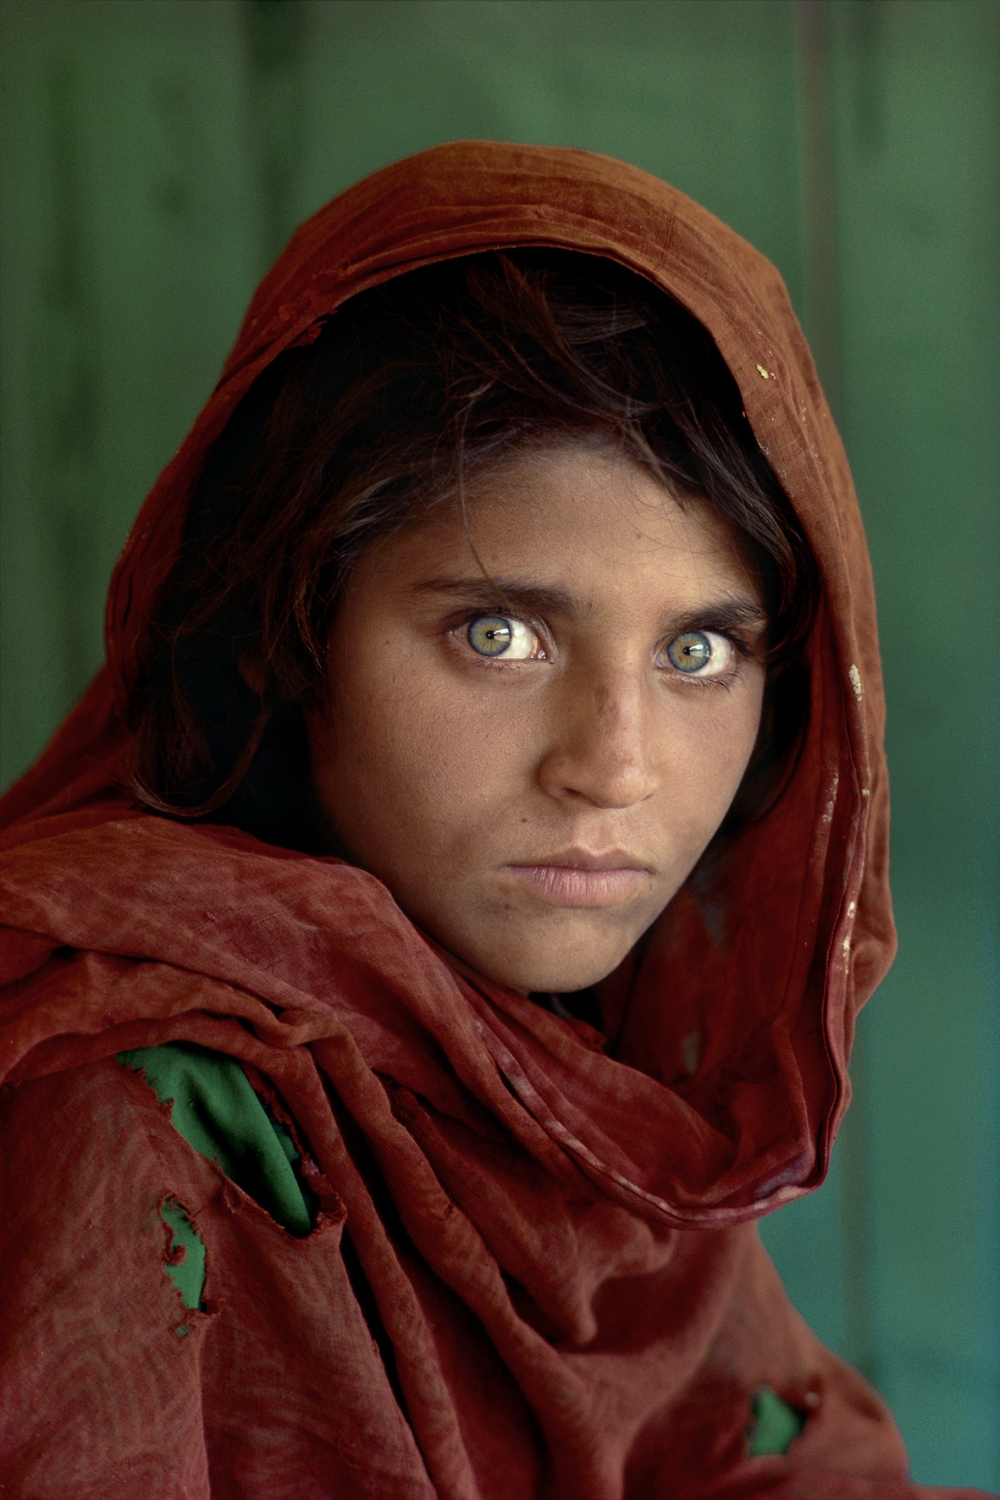 """Sharbat Gula, Afghan Girl, at Nasir Bagh refugee camp near Peshawar, Pakistan, 1984. National Geographic. """"The green-eyed Afghan girl became a symbol in the late twentieth century of strength in the face of hardship.  Her tattered robe and dirt-smudged face have summoned compassion from around the world;  and her beauty has been unforgettable.  The clear, strong green of her eyes encouraged a bridge between her world and the West.  And likely more than any other image, hers has served as an international emblem for the difficult era and a troubled nation."""" - Phaidon 55 The iconic image does not stand outside of time.  Rather, it connects with the moment in a deeply profound way.  Such as images are imbued with meaning, a significance that resonates deeply with a wide and diverse audience.  McCurry's photograph of the Afghan girl is one such image.  For many, this beautiful girl dressed in a ragged robe became a worldwide symbol for a nation in a state of collapse.   Bannon, Anthony. (2005). Steve McCurry. New York: Phaidon Press Inc., 12. NYC5958, MCS1985002 K035 Afghan Girl: Found National Geographic, April 2002 Iconic Photographs National Geographic Magazine, Along Afghanistan's War-torn Frontier, June 1985, Vol. 167, No. 6"""